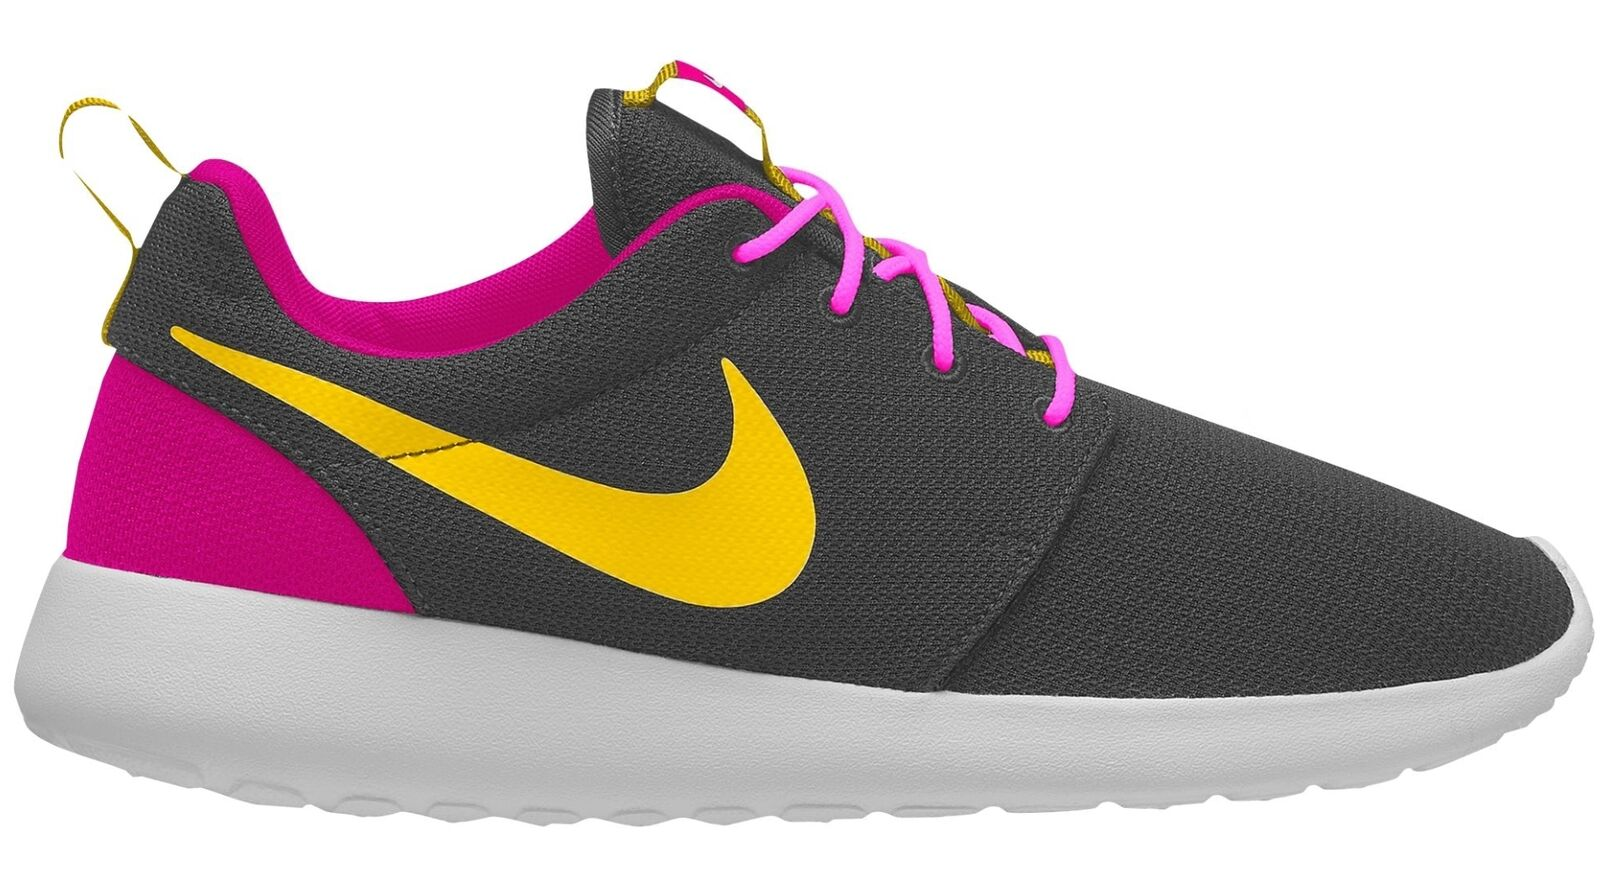 Nike Roshe One Mens 511881-035 Anthracite Magenta Yellow Running shoes Size 10